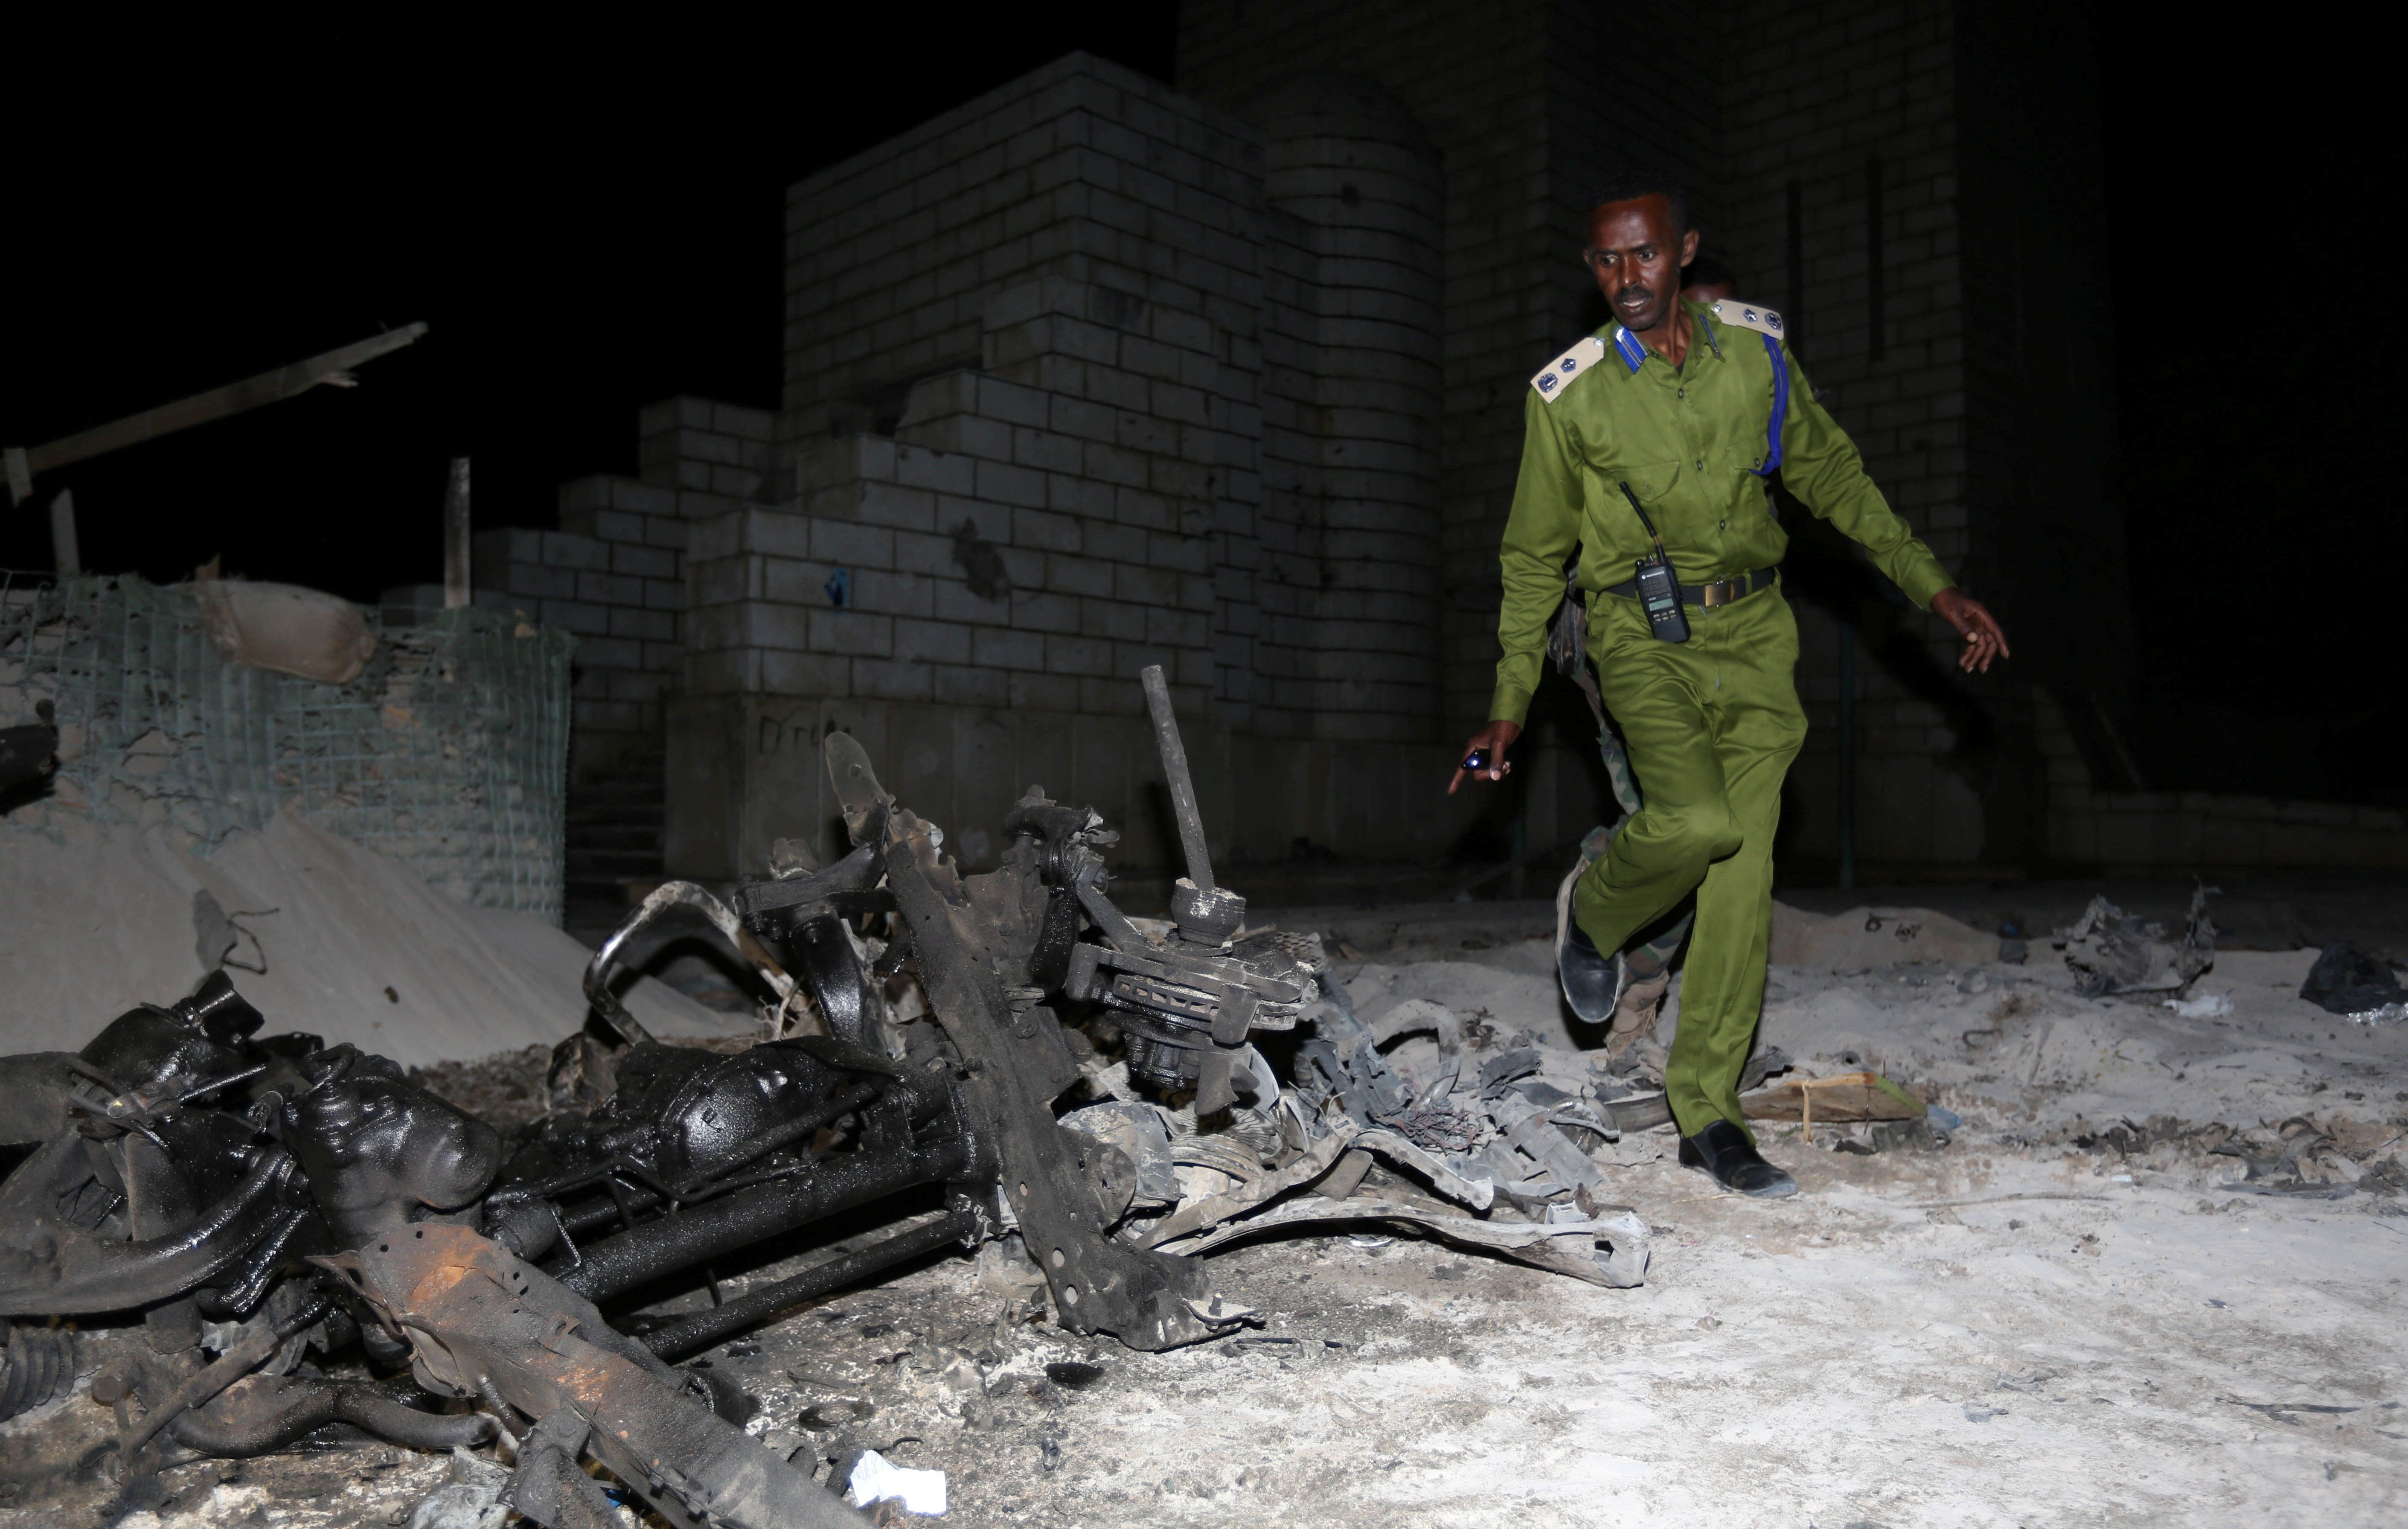 A Somali policeman inspects the scene of a suicide car explosion near the parliament in the capital Mogadishu, November 5, 2016. REUTERS/Feisal Omar     TPX IMAGES OF THE DAY